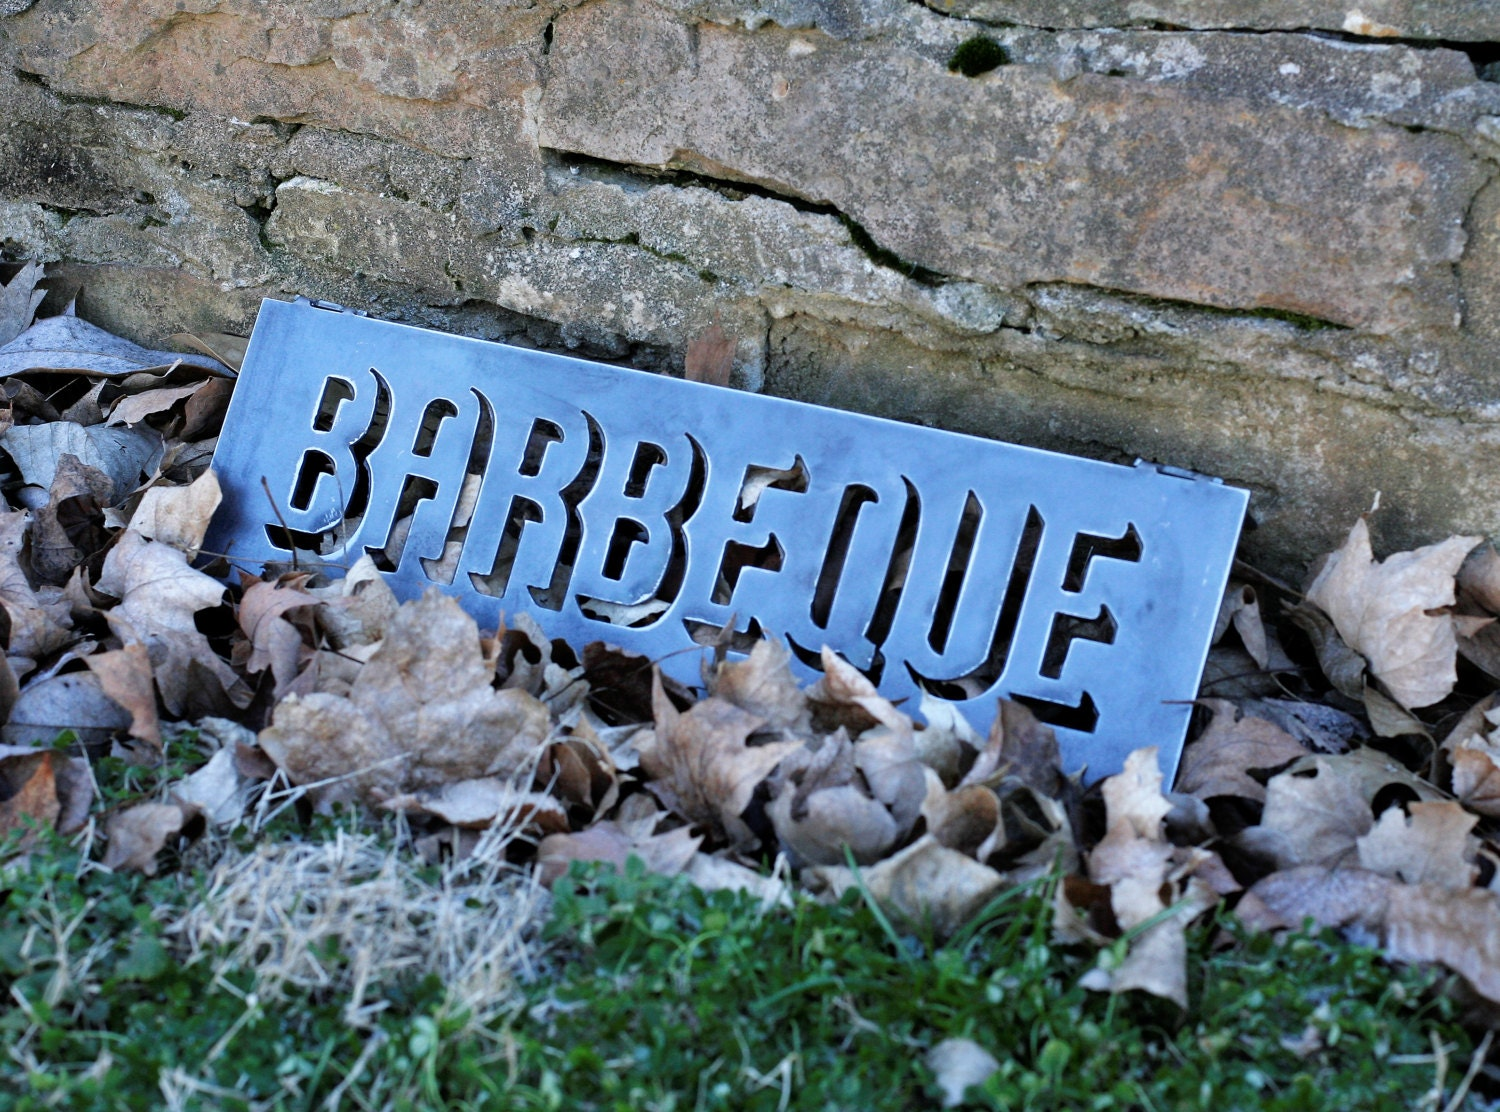 18 Inch Metal Letters 18 Inch Metal Barbeque Sign Rustic Barbecue Letters